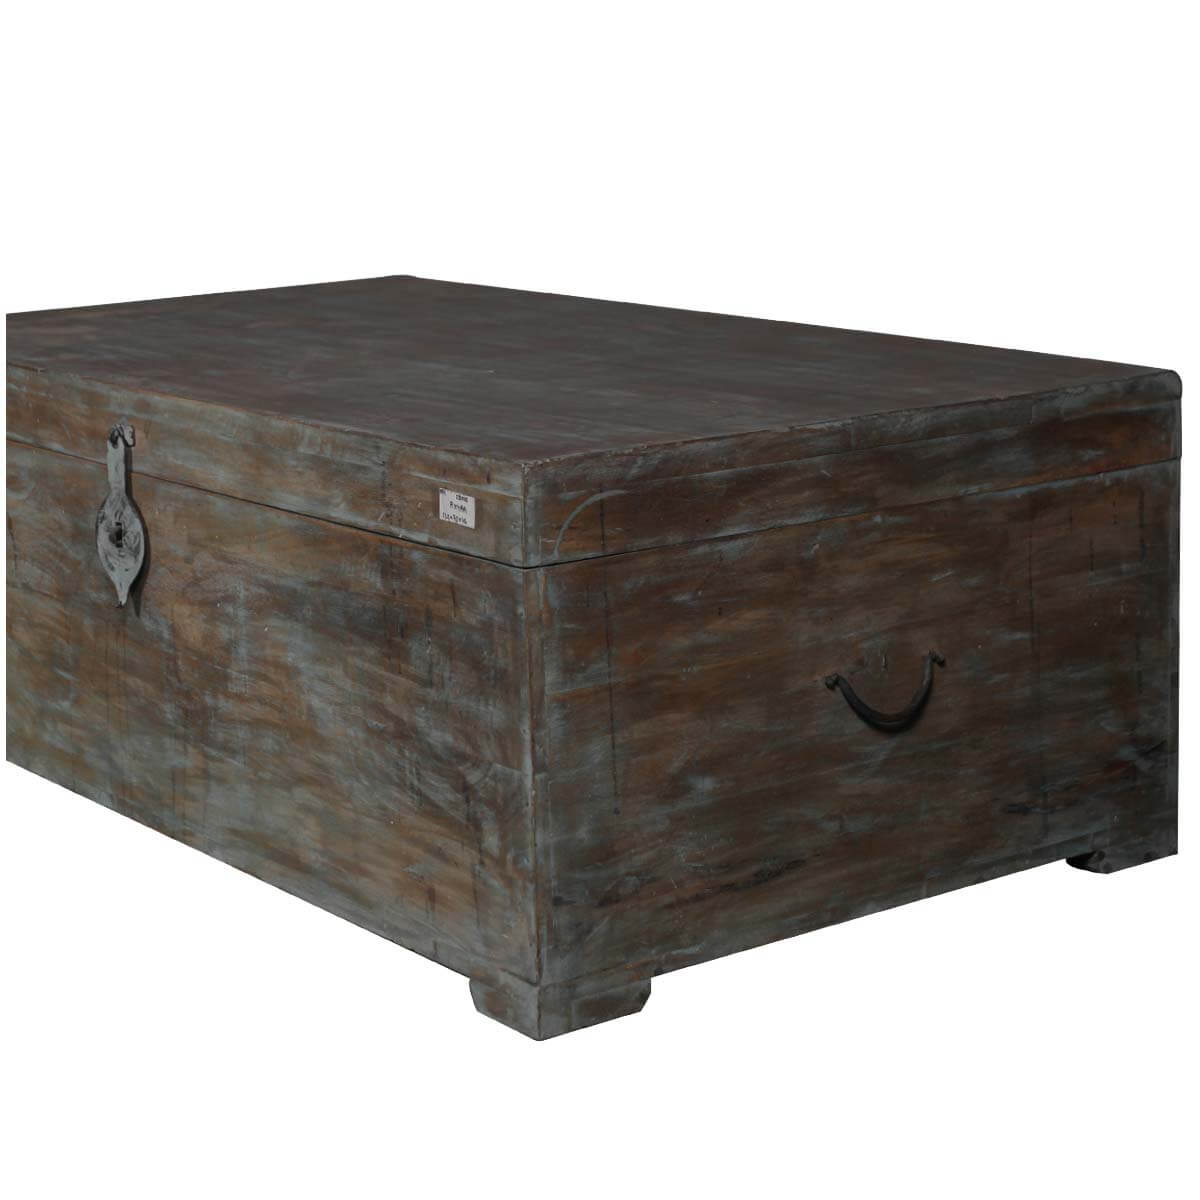 Rustic Mango Wood Distressed Coffee Table Storage Chest